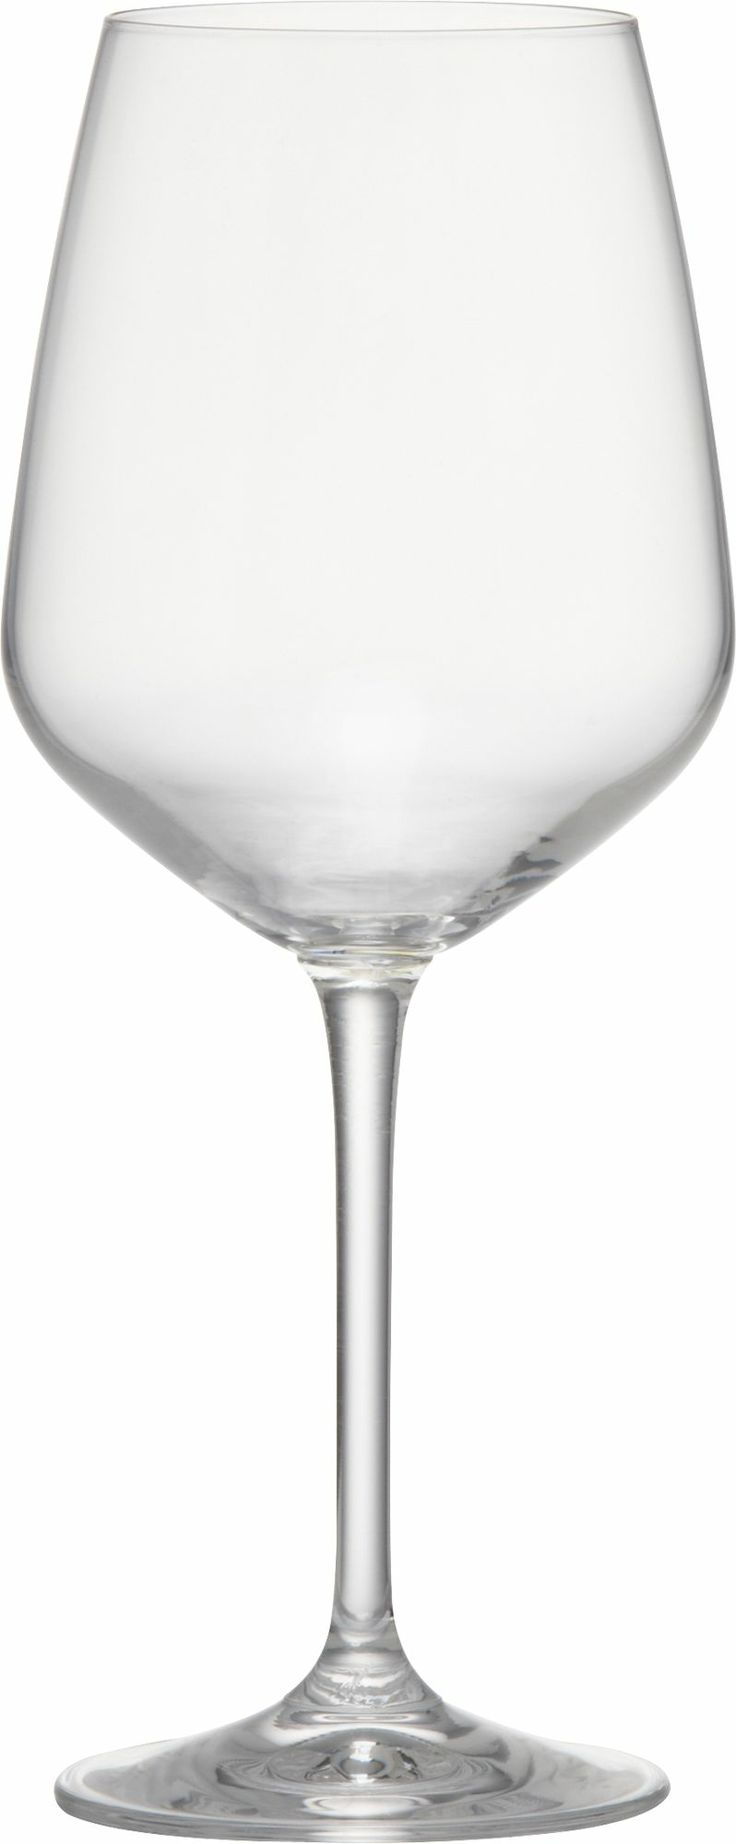 REGISTERED - Nattie Everyday Glasses Set of Eight  | Crate and Barrel $28 for 8 glasses